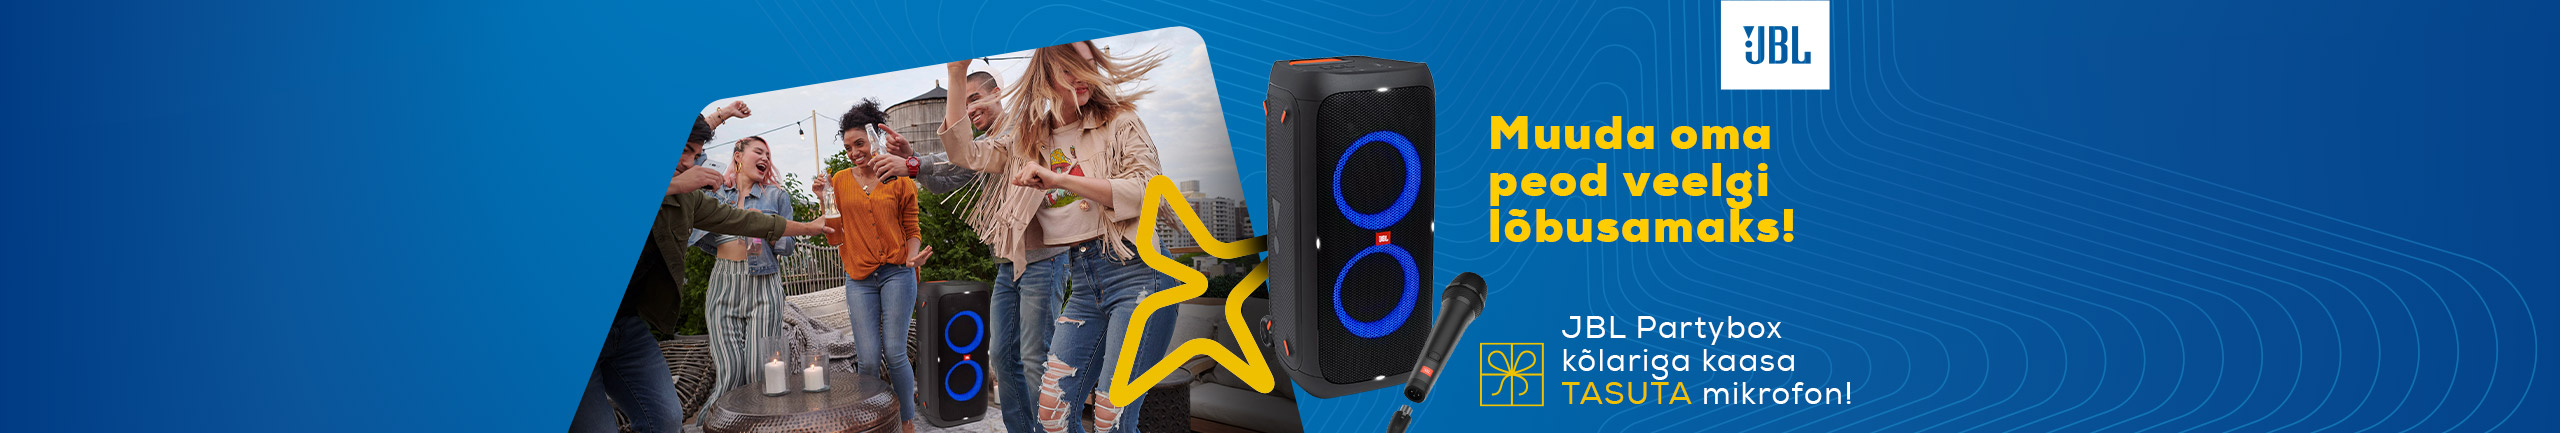 Buy JBL Partybox 310 and get a microphone as a complimentary gift!